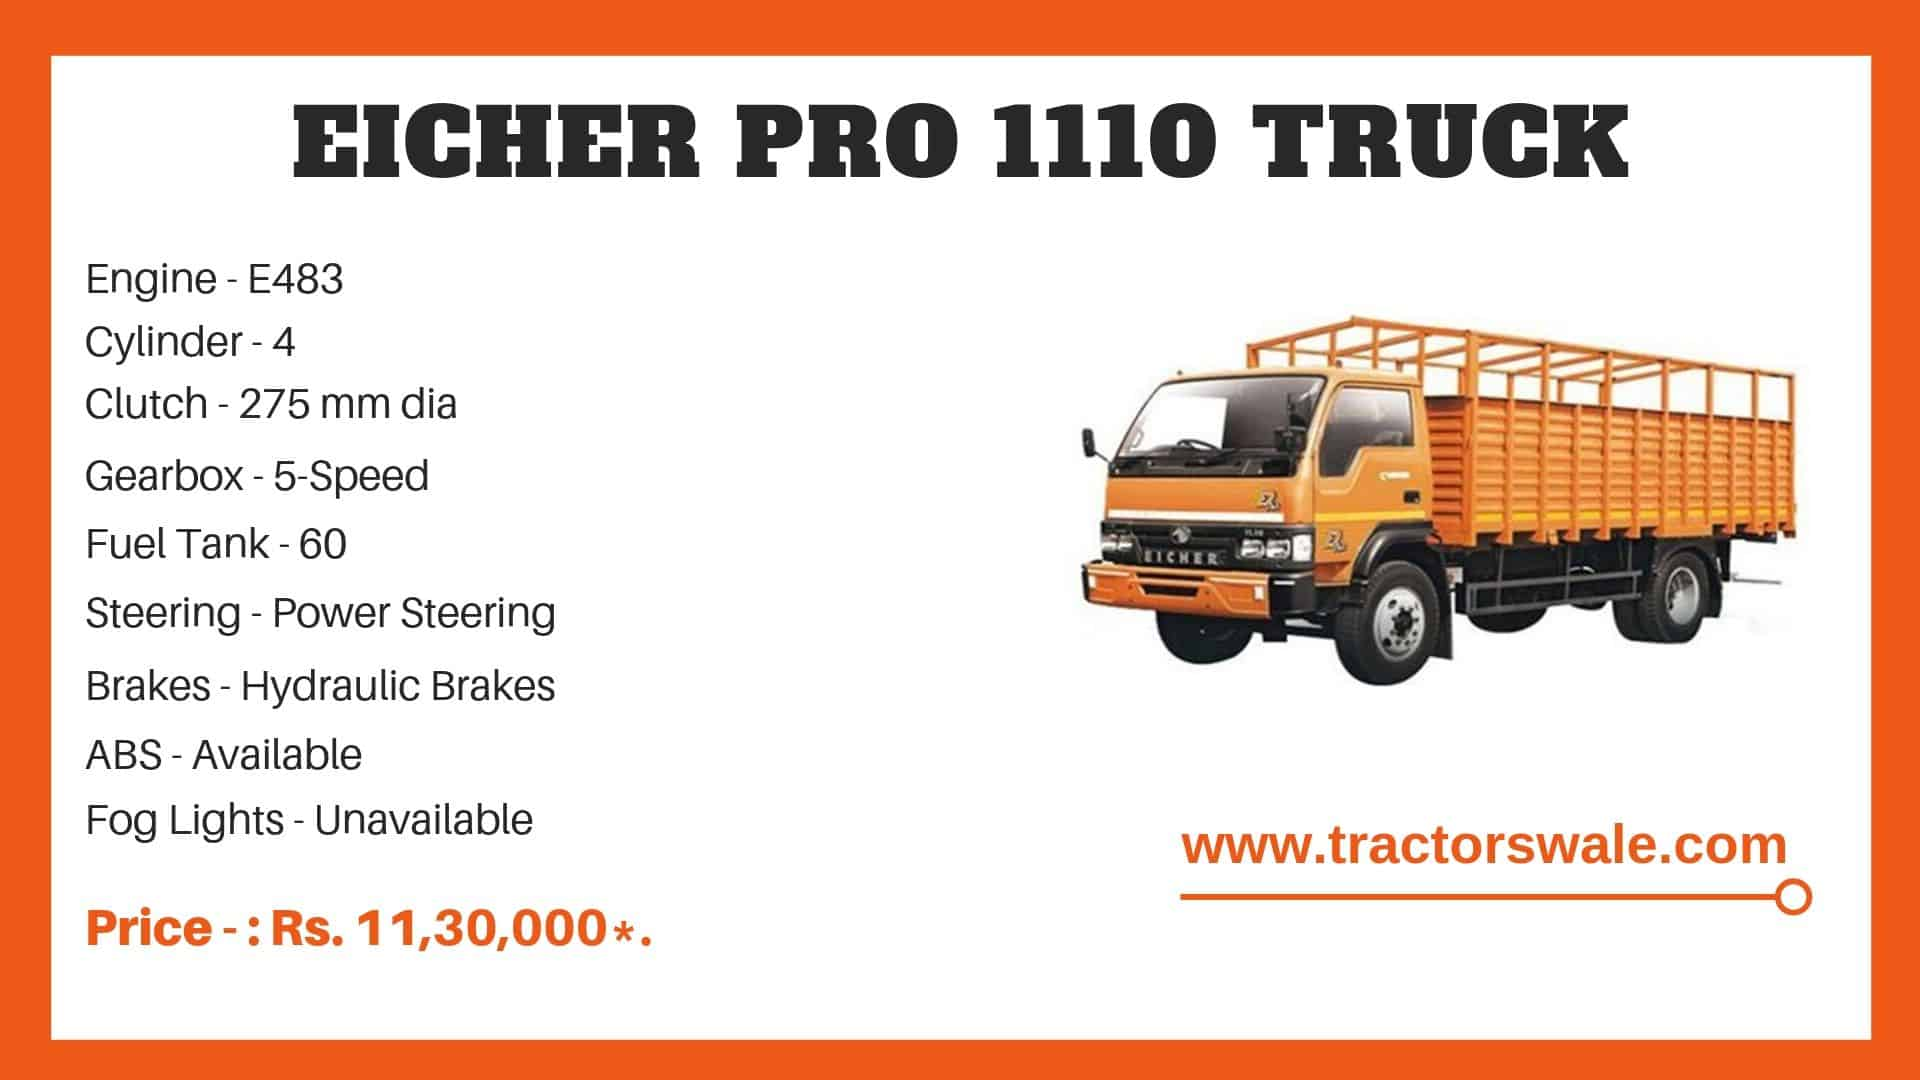 Eicher Pro 1055 truck Specification